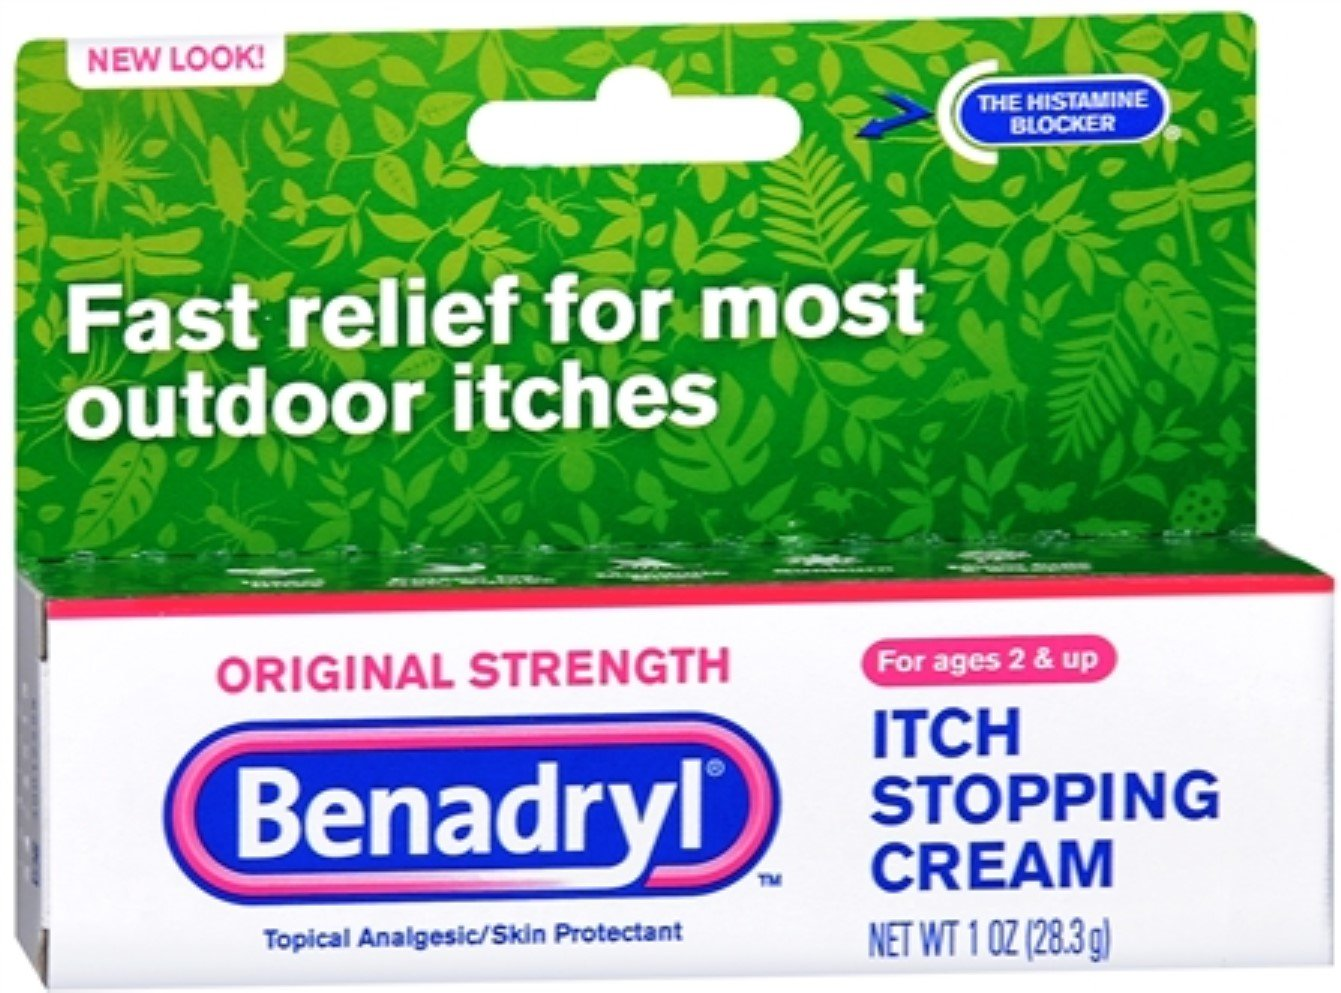 Benadryl Itch Stopping Cream Original Strength 1 oz (7 Pack) by Pharmapacks